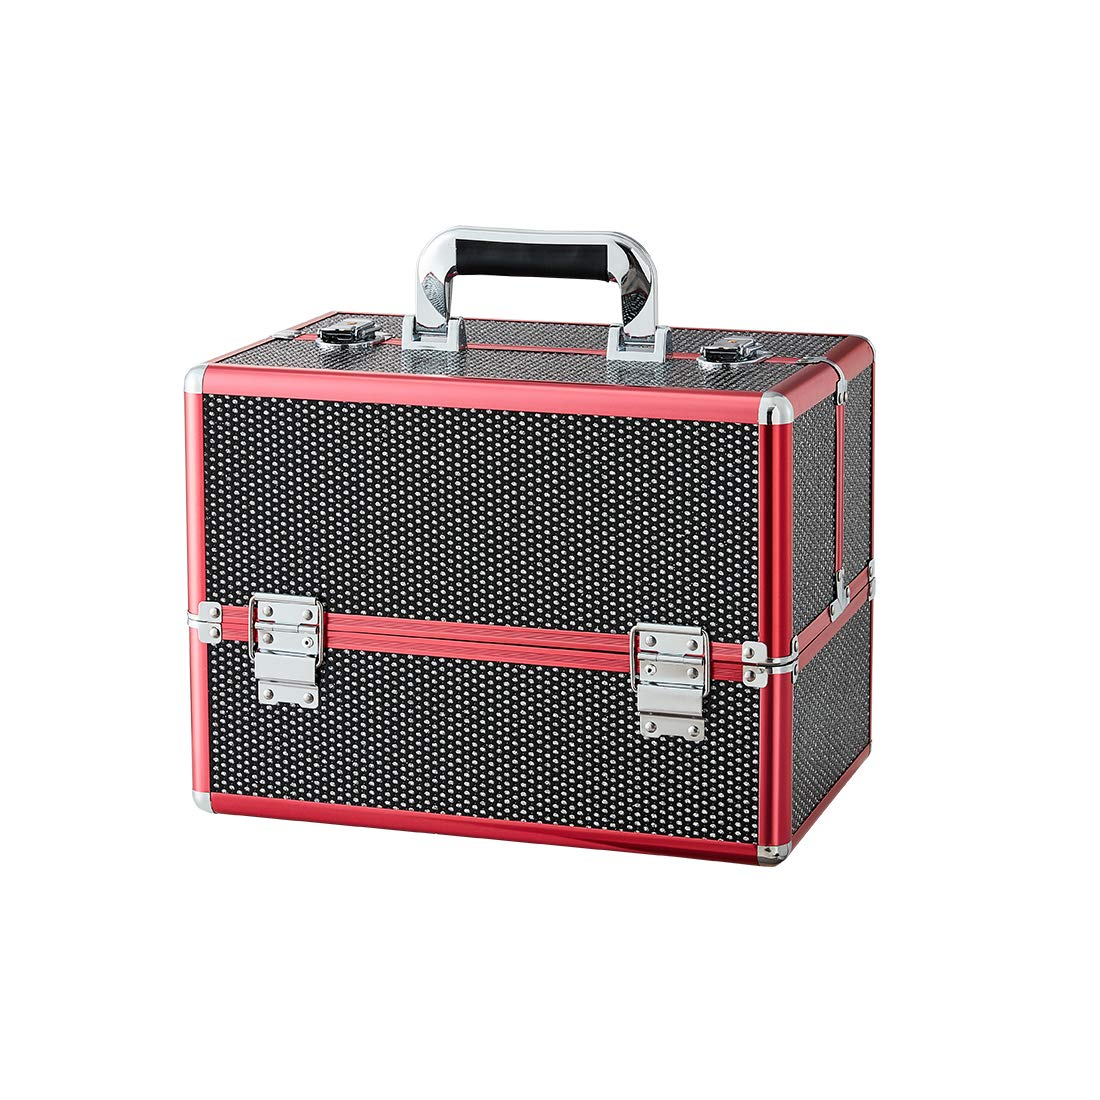 Makeup case - Professional Portable Red Aluminum Cosmetic Organizer Box With Folding Trays and Locks Black